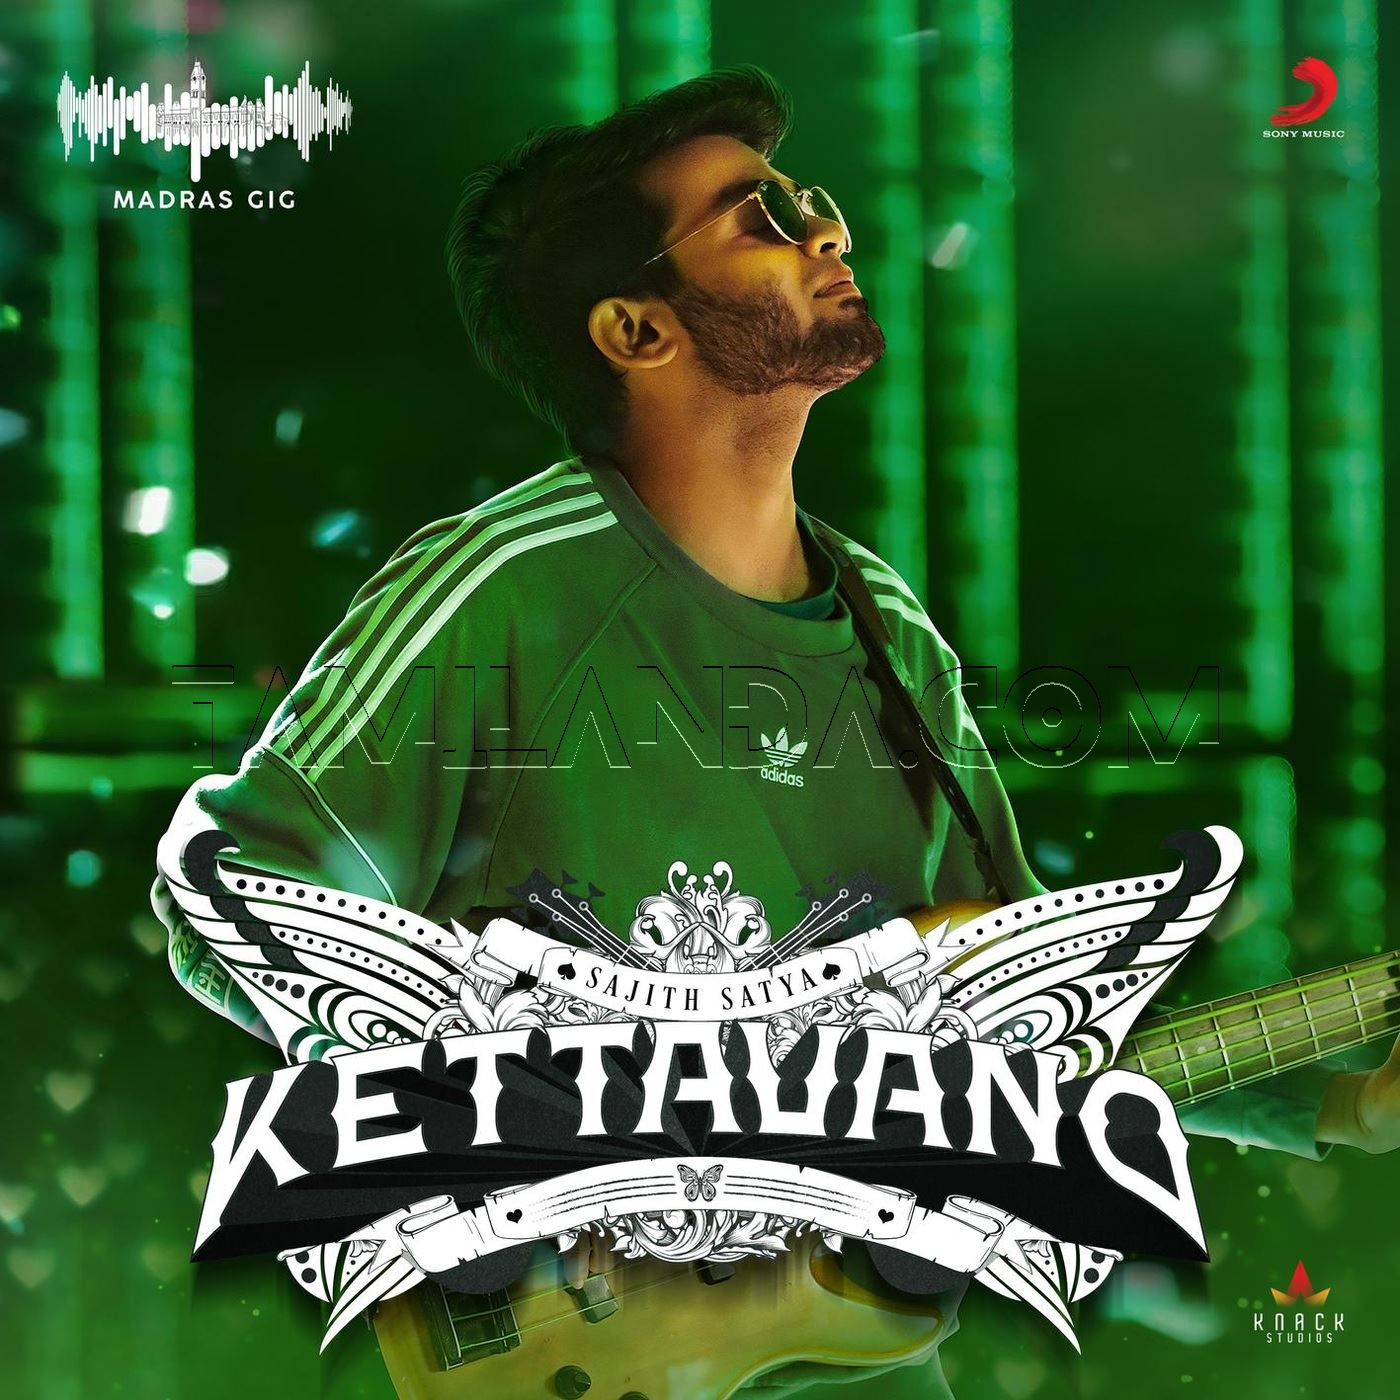 Kettavano (Madras Gig) – Single FLAC Song